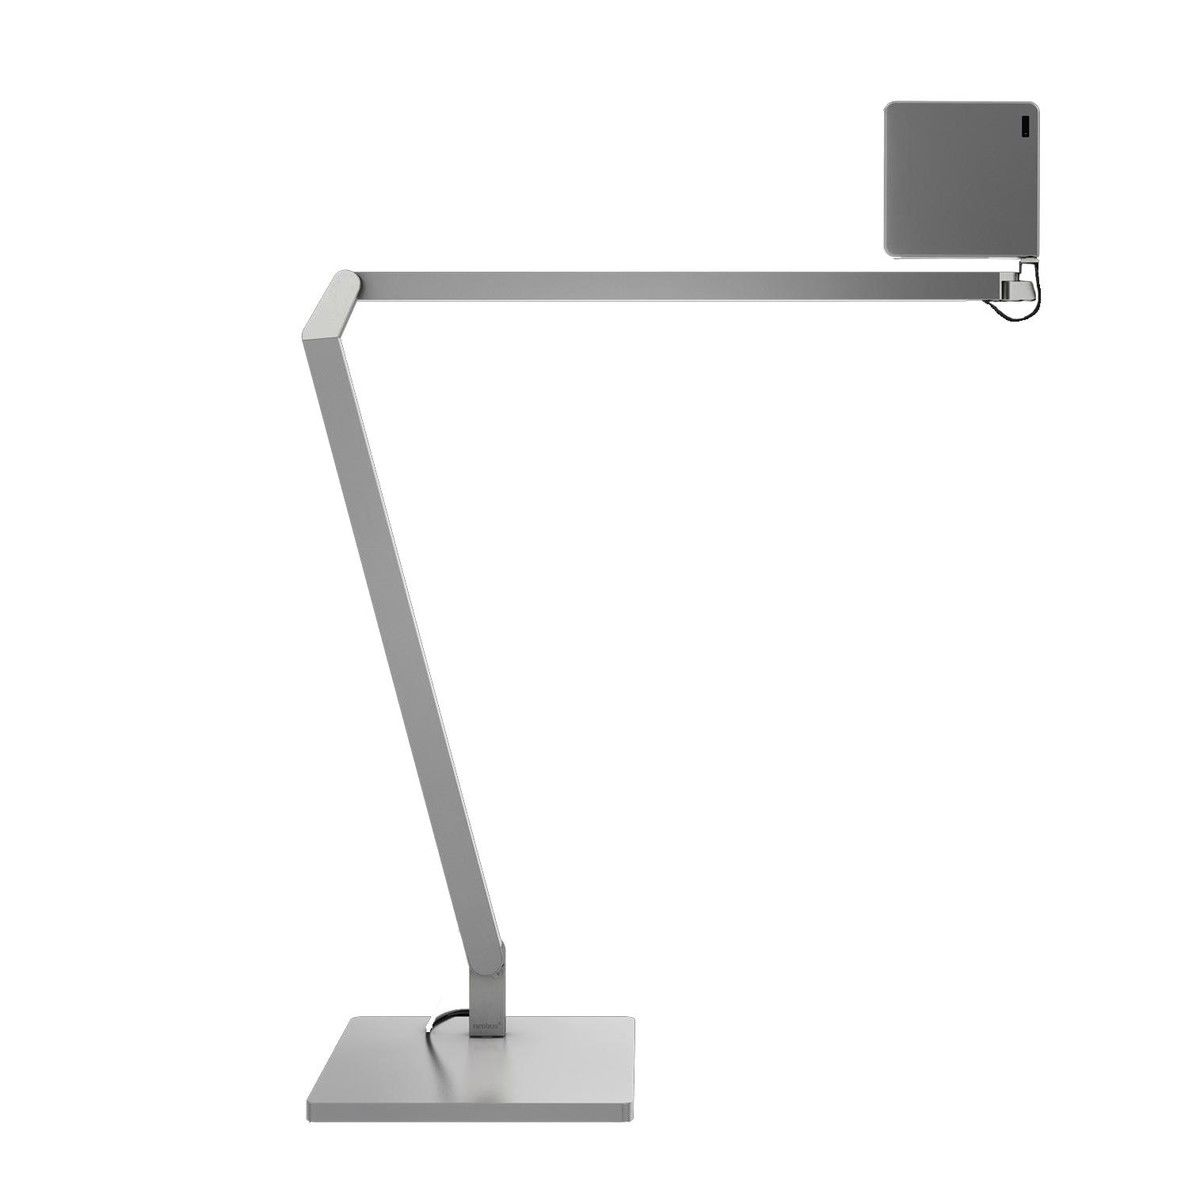 roxxane home led table lamp  nimbus  ambientedirectcom - nimbus  roxxane home led table lamp  silveranodisedwith table base